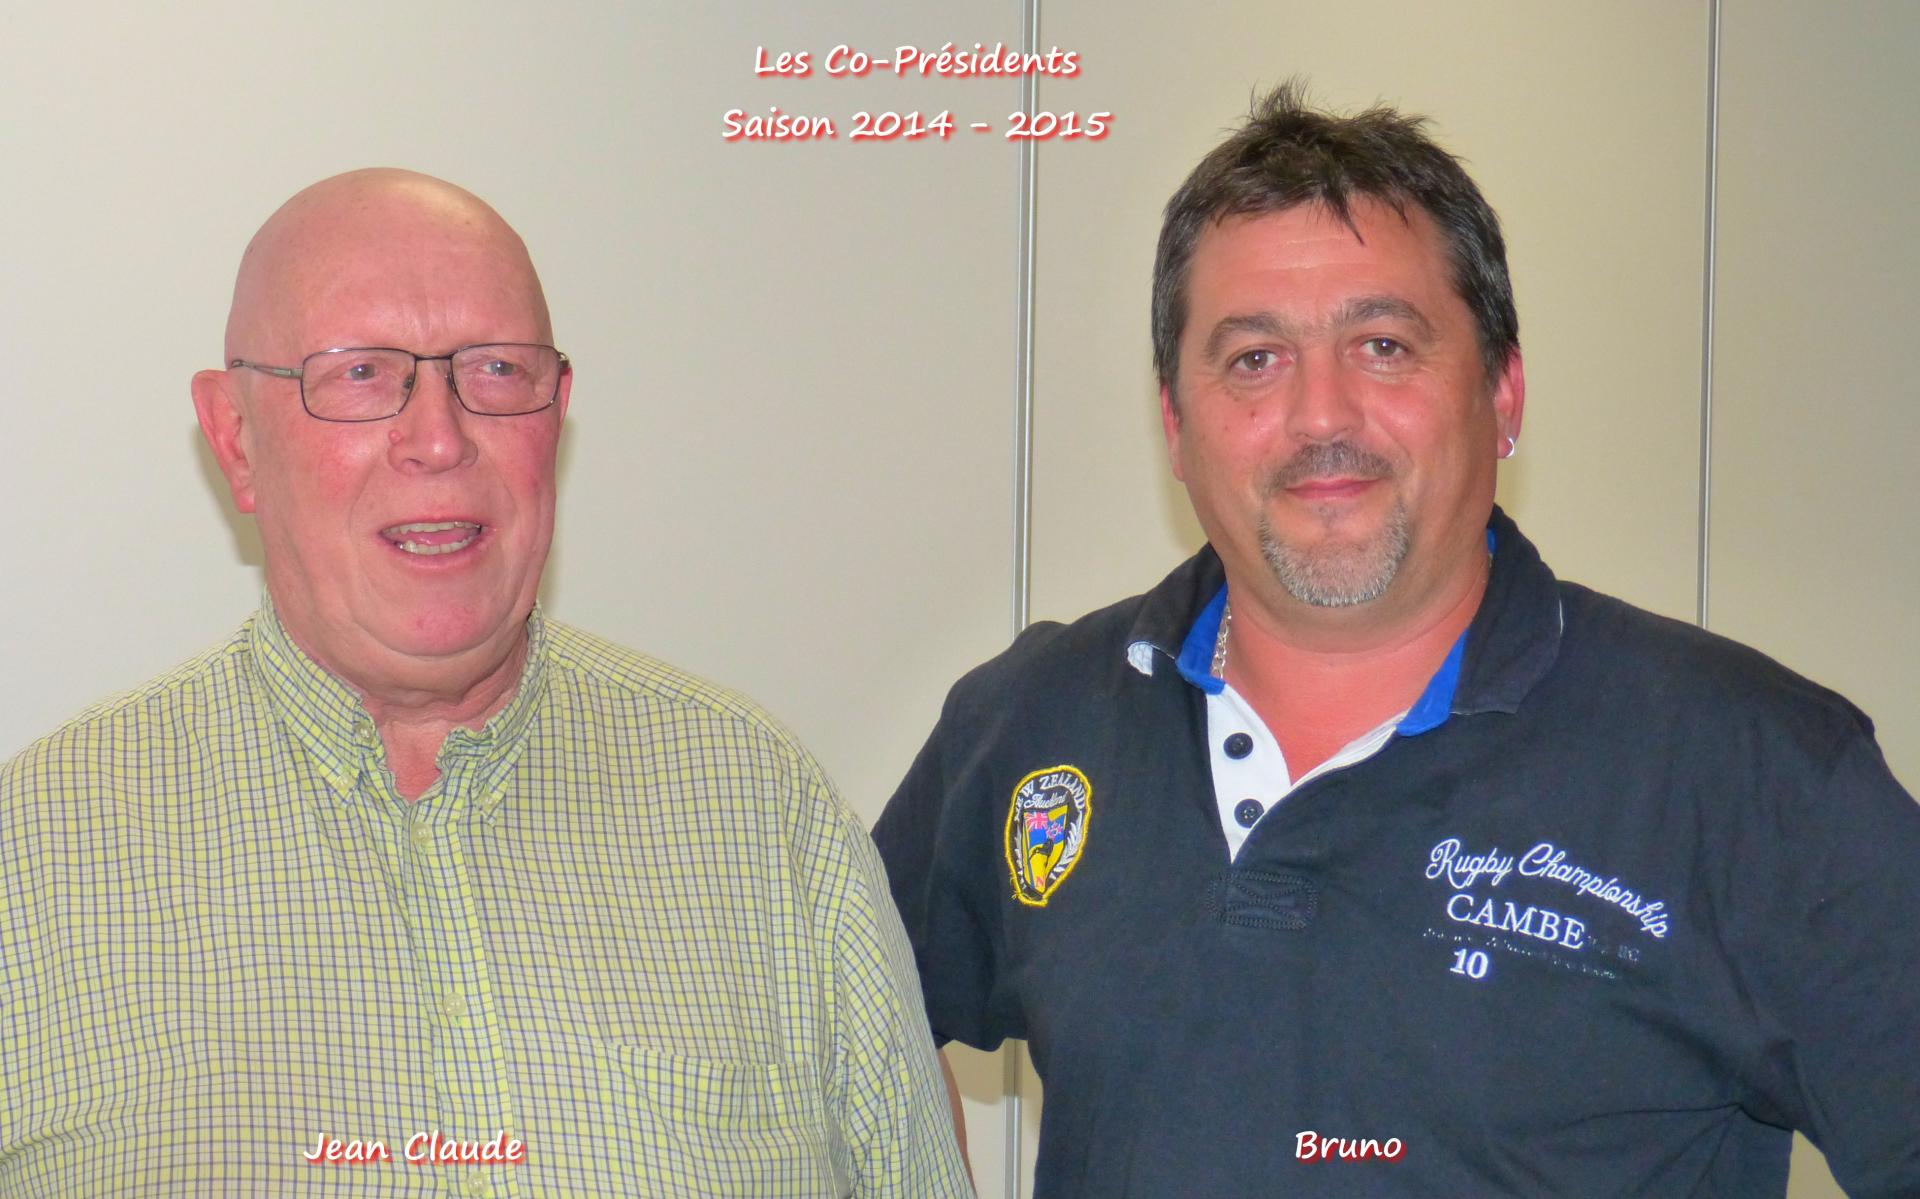 Les co presidents 2014 2015